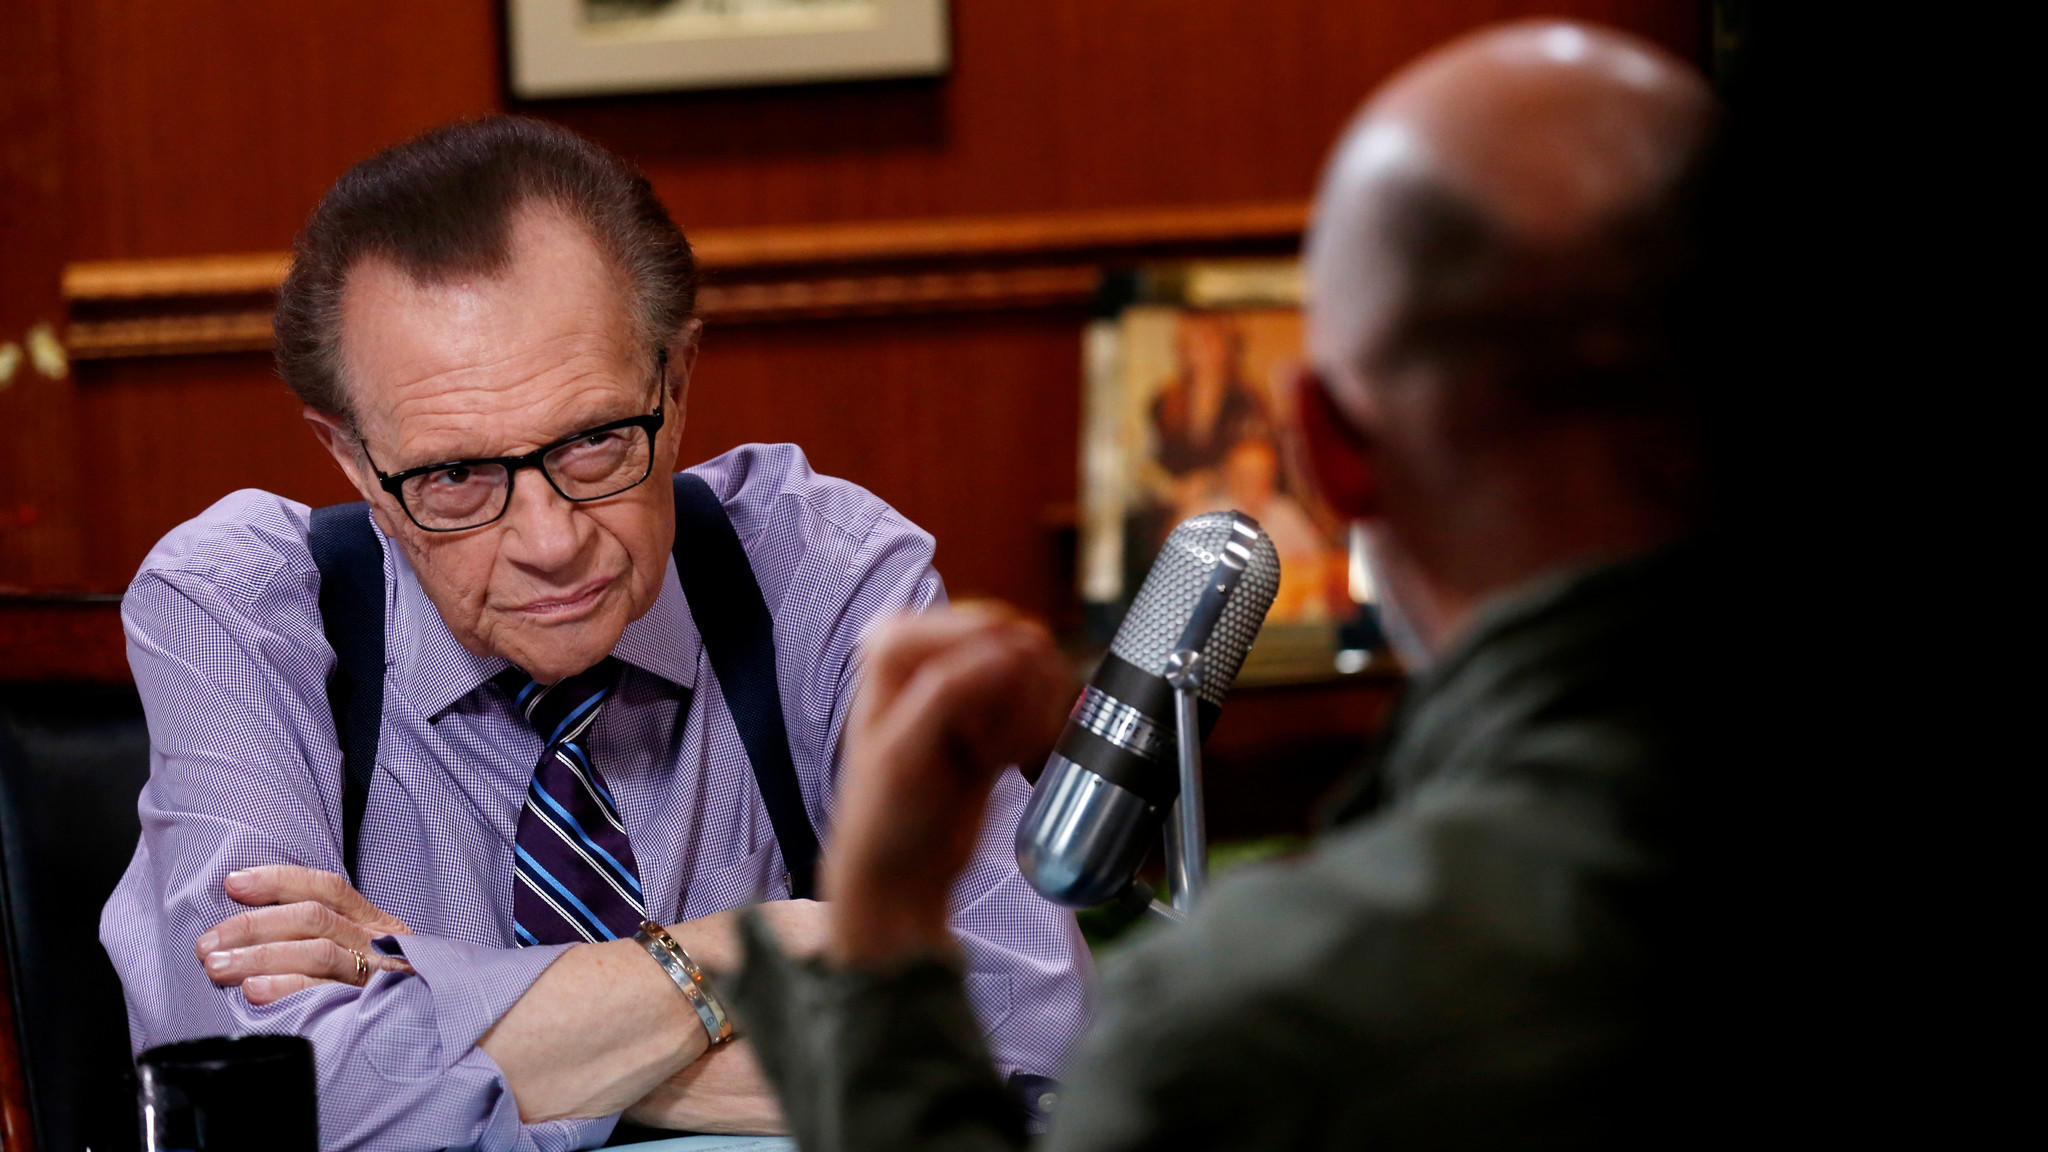 Larry King has revealed that he underwent surgery for lung cancer in July. (Rick Loomis / Los Angeles Times)